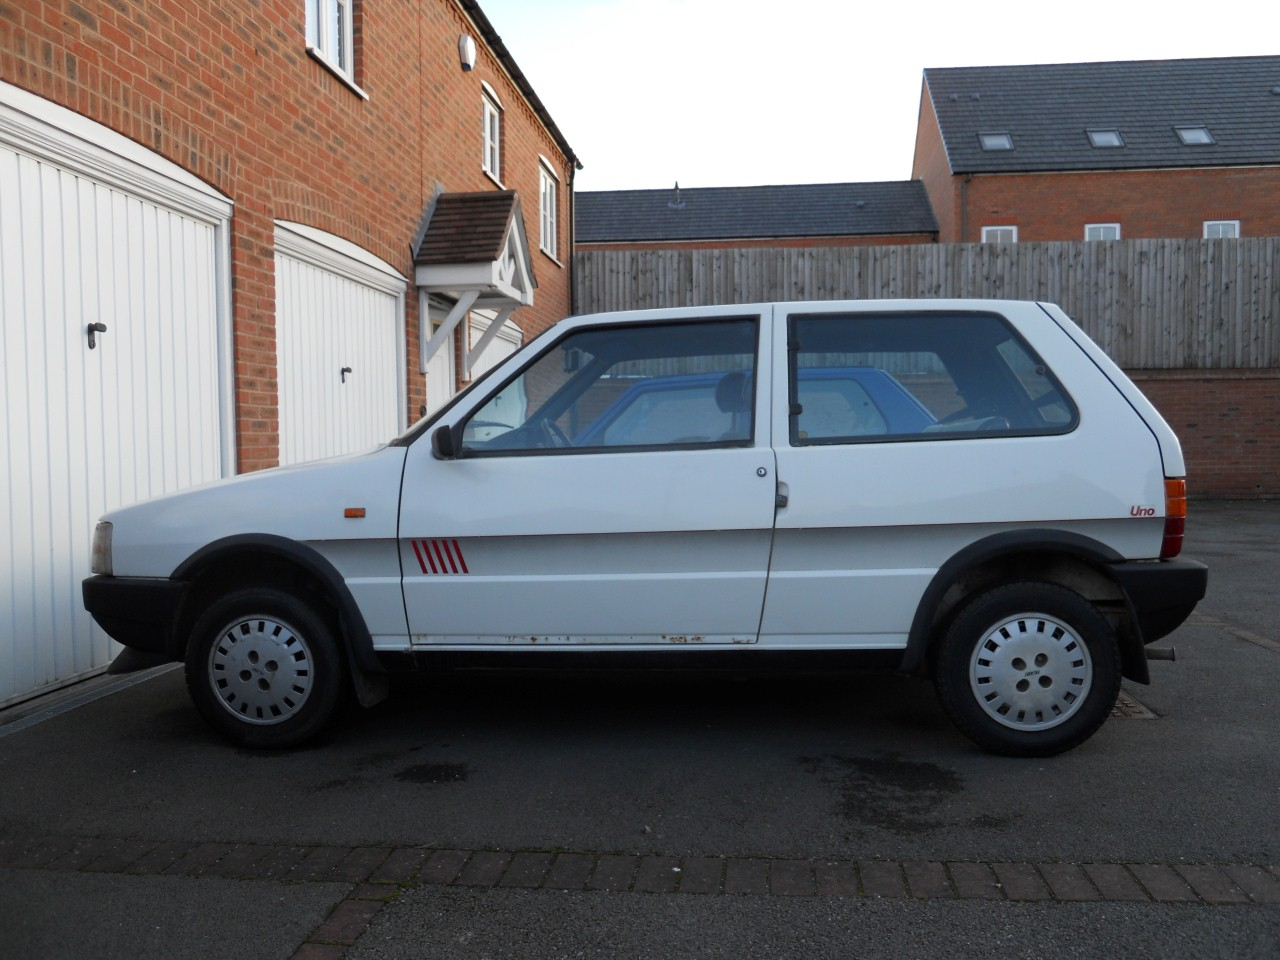 Tuning Mk1 Uno 14 T Jet Fire Turbo Sleeper Project The Fiat Forum Manual Free Download I Have Spent Today Fixing All Lights Fitting A Door Lock Mech And Checking Things Going To Try For An Mot Within Week